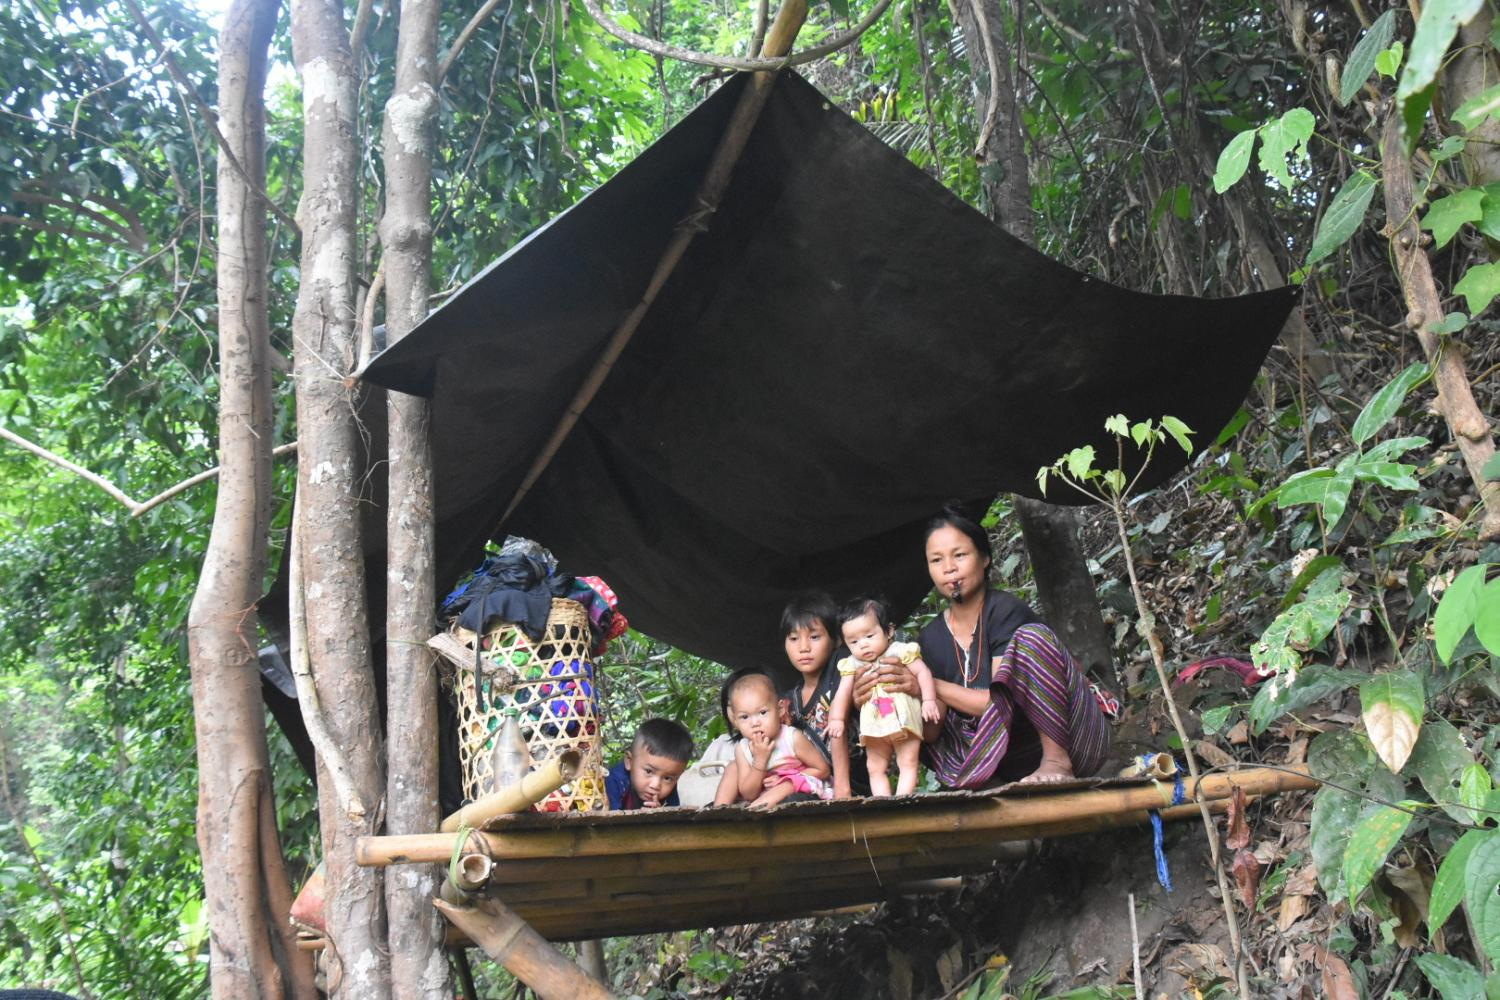 A family with four small children are among thousands of internally displaced persons hiding in the forests and unable to return home due to deadly airstrikes by the Myanmar army since March 27.saw kha pay mu nu